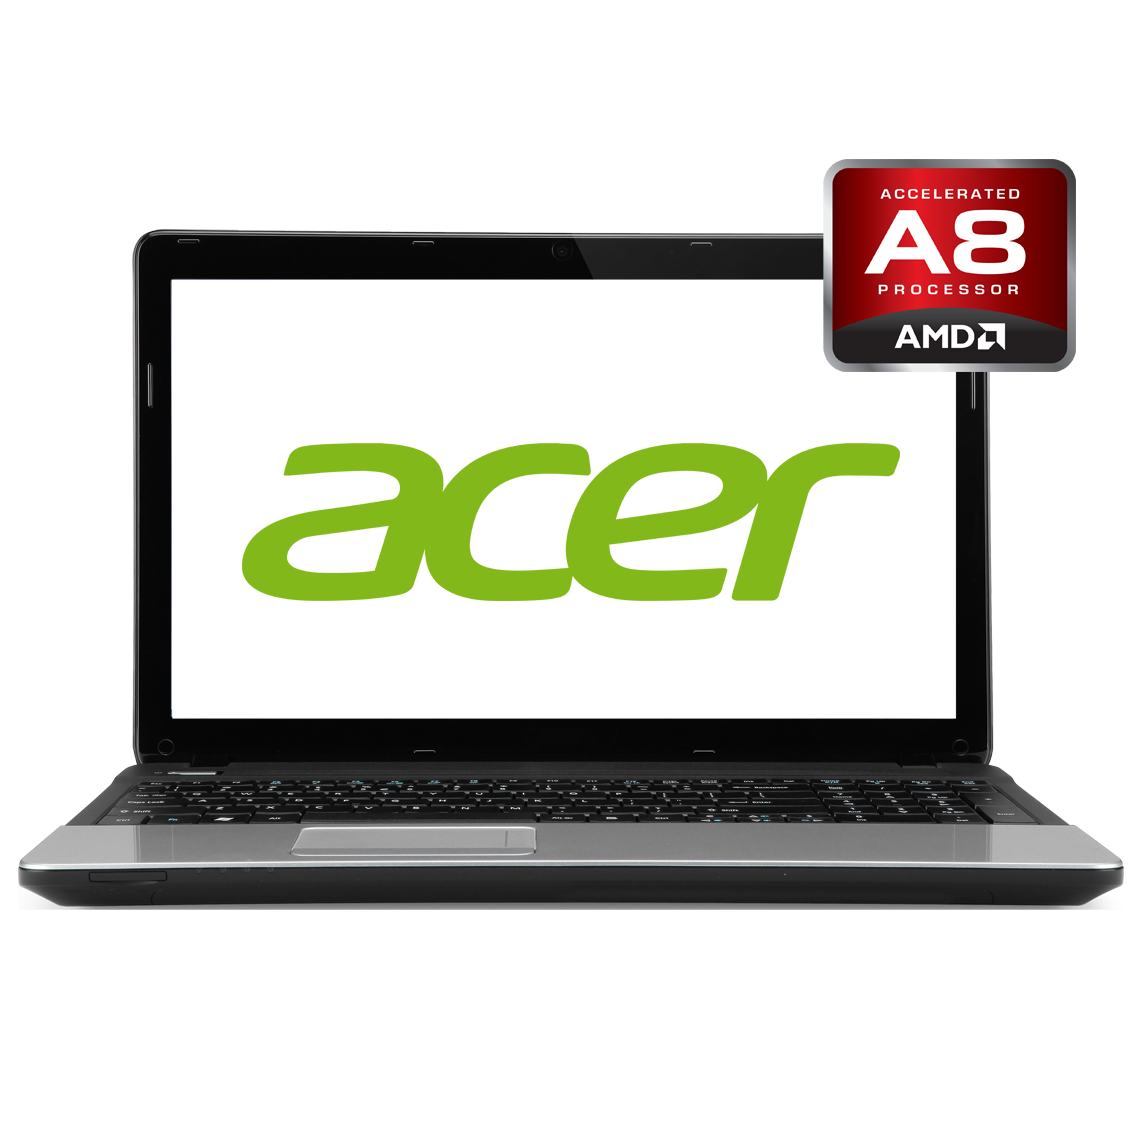 Acer - 13 inch AMD A8